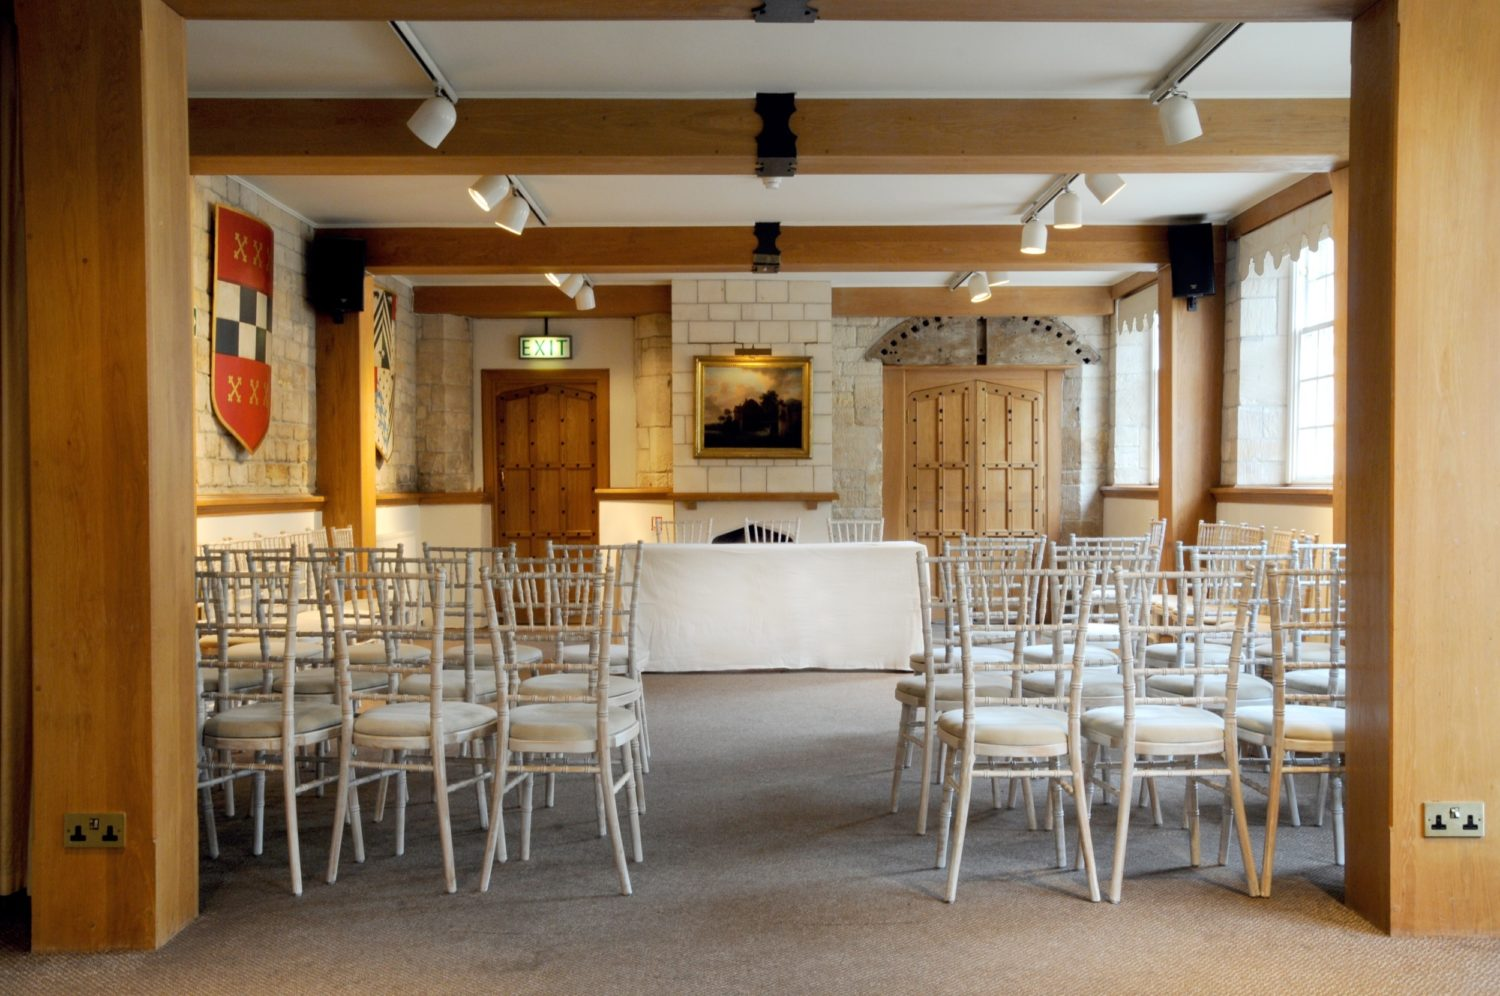 Interior shot of Chandos Hall. Rows of chairs face the table at the front of the room.